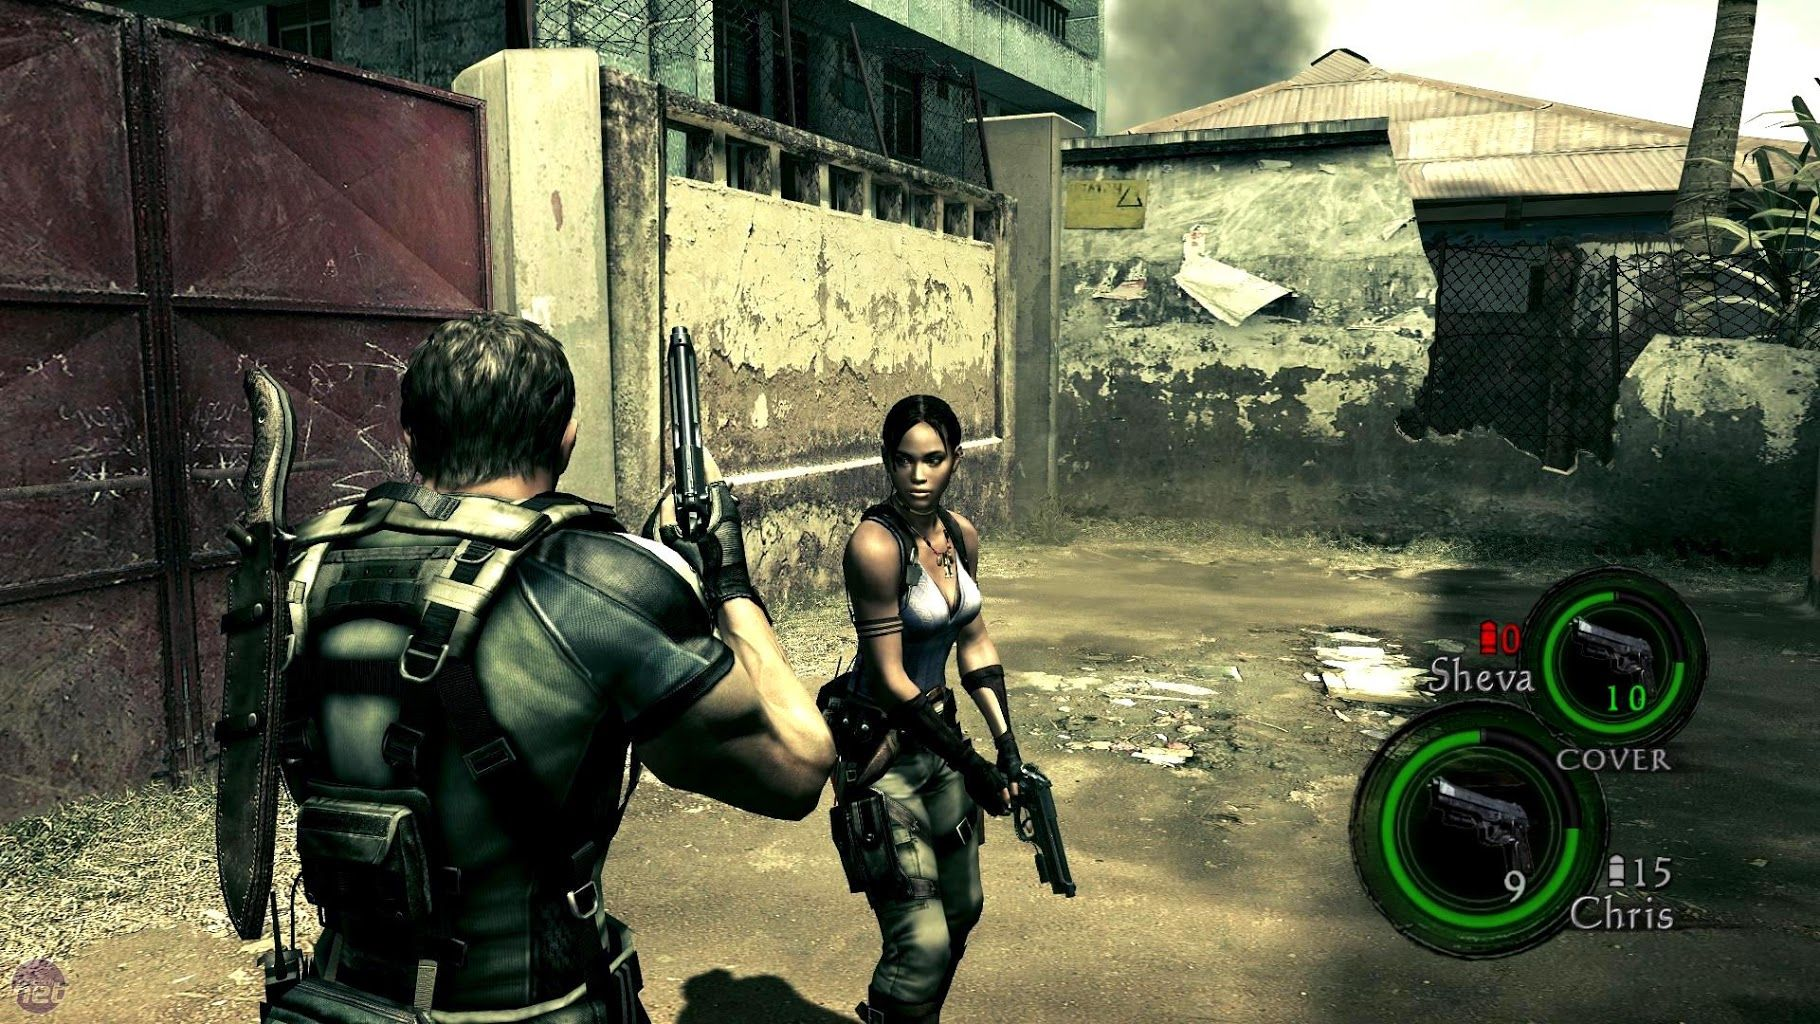 Resident evil 5 pron images sexual comic